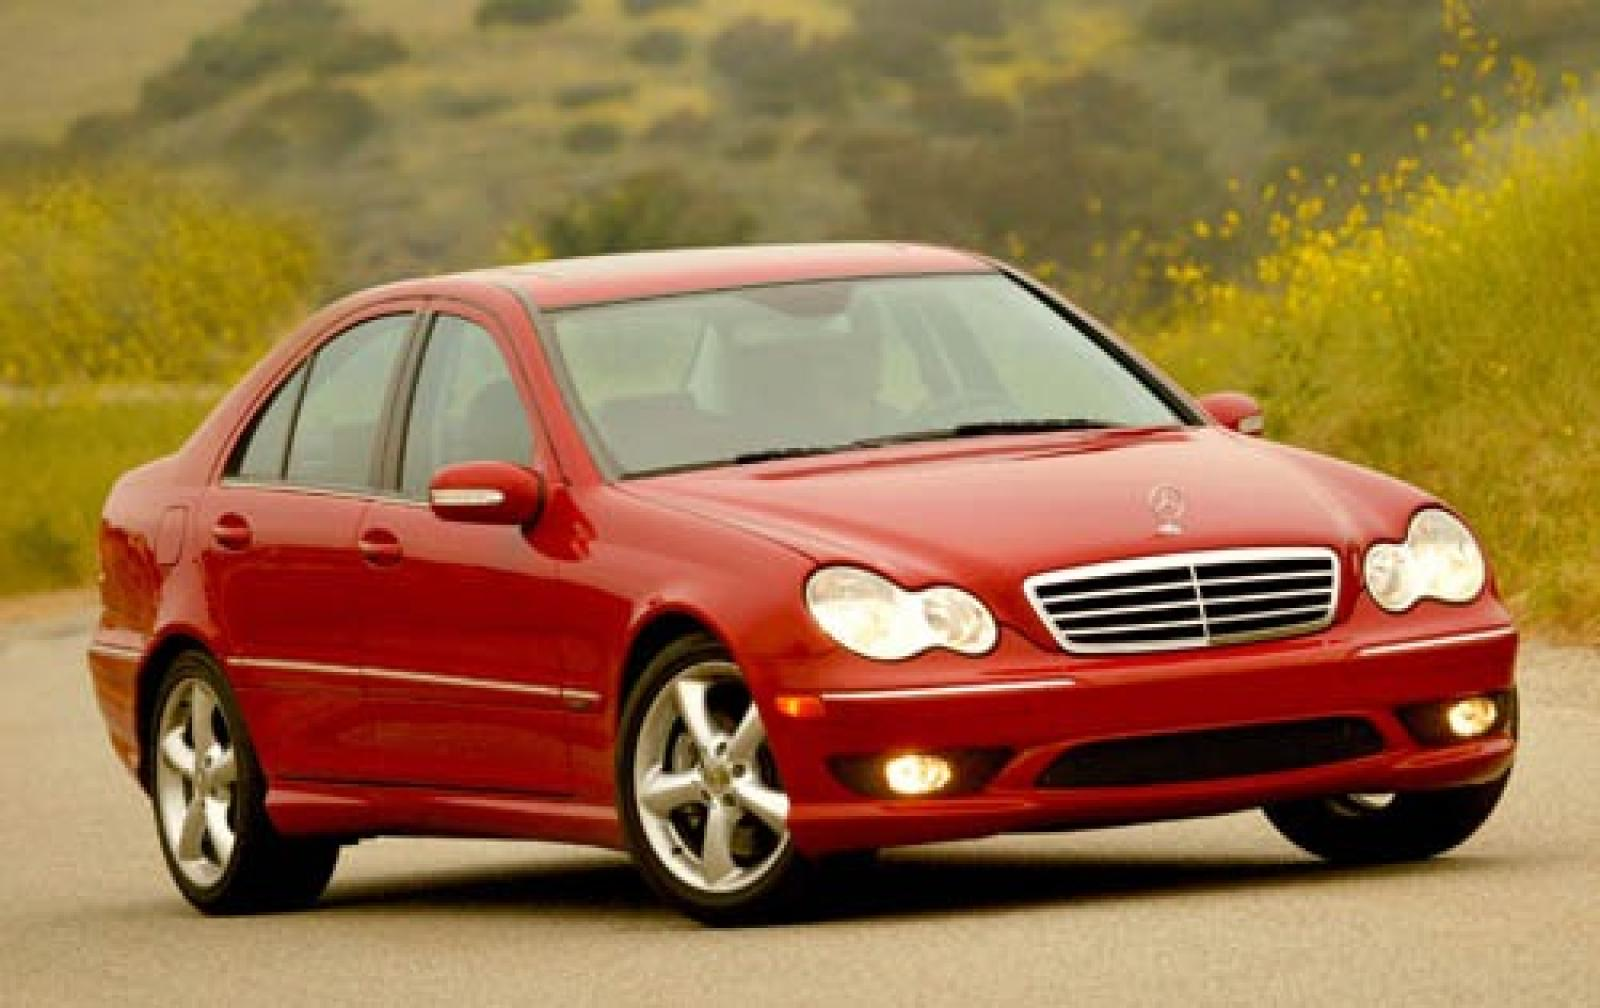 2005 mercedes benz c class information and photos zomb. Black Bedroom Furniture Sets. Home Design Ideas